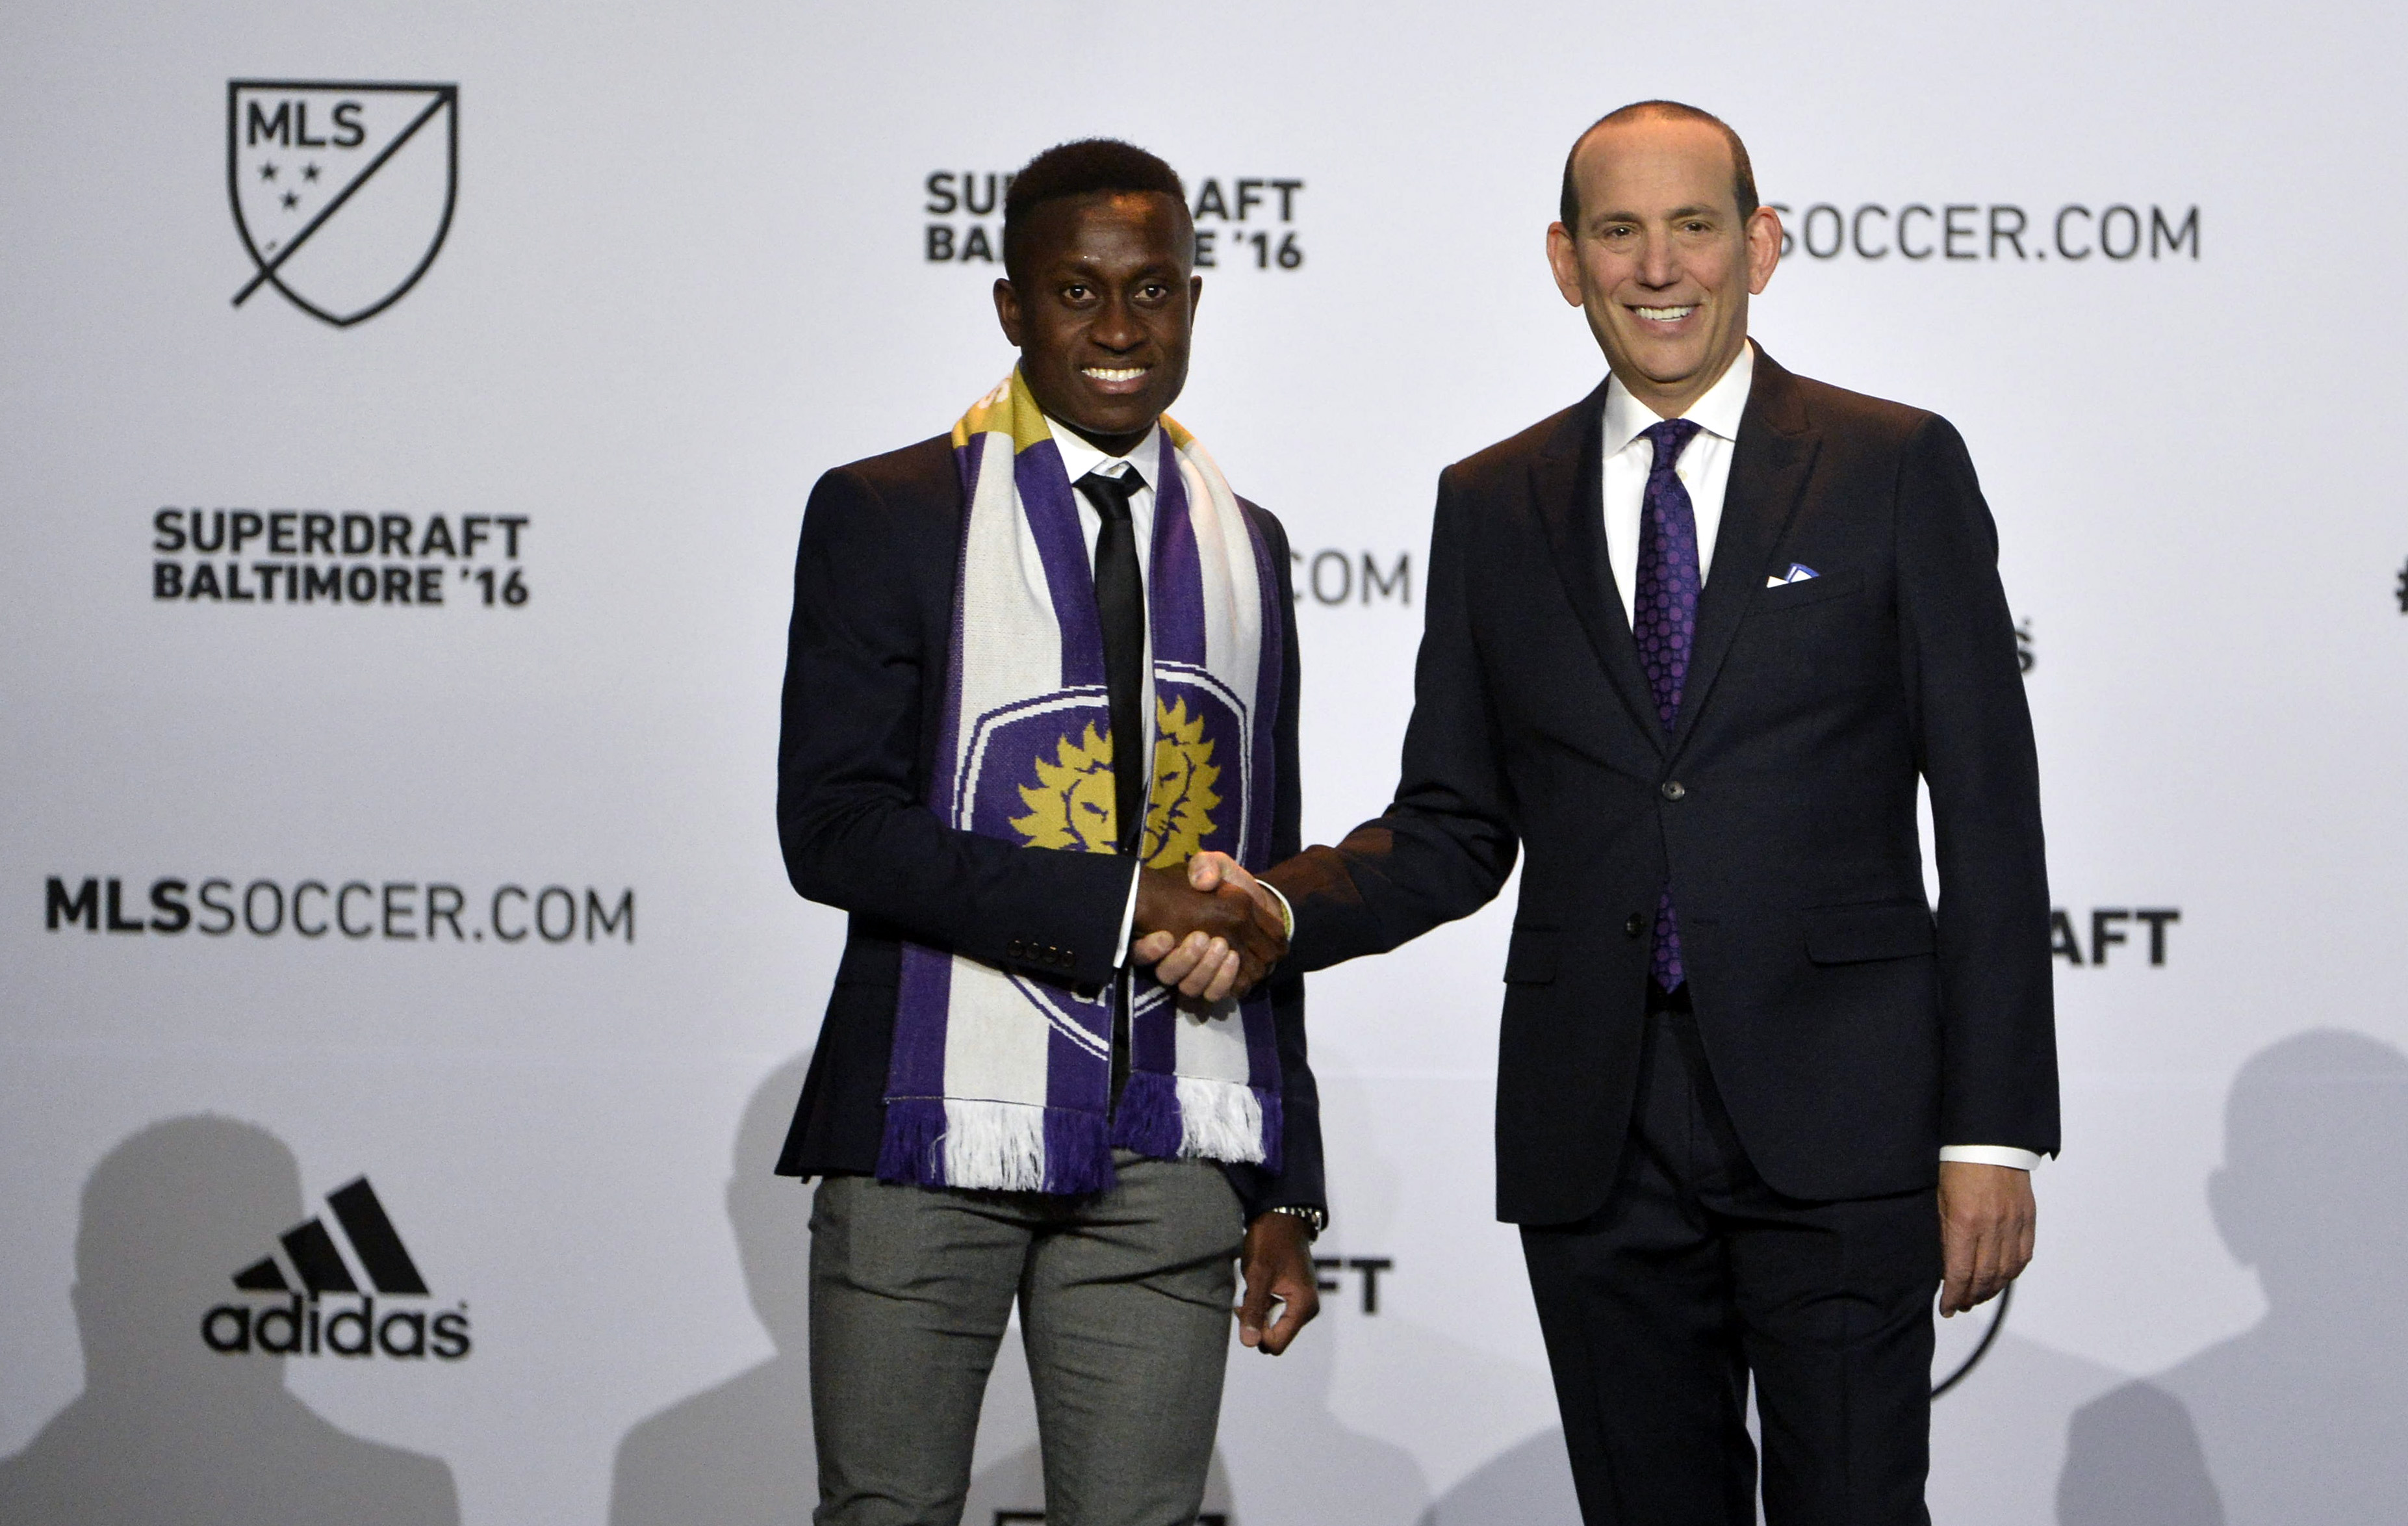 Laryea shakes hands with MLS commissioner Don Garber after being drafted in 2016 MLS SuperDraft.